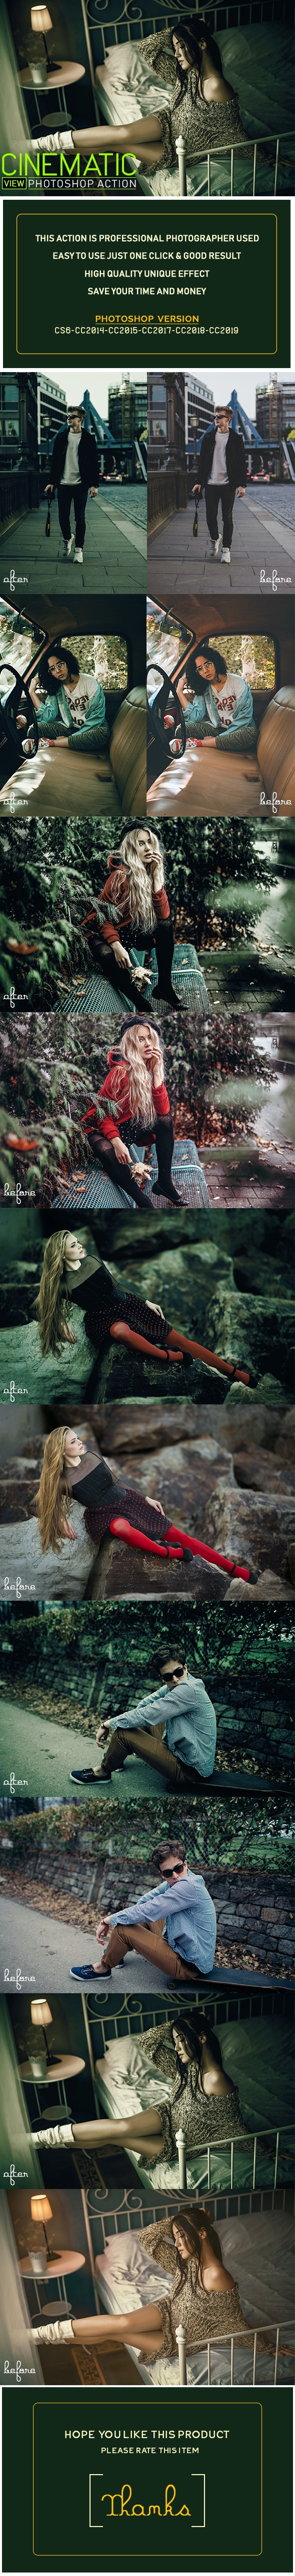 Cinematic View Photoshop Action - Photo Effects Actions